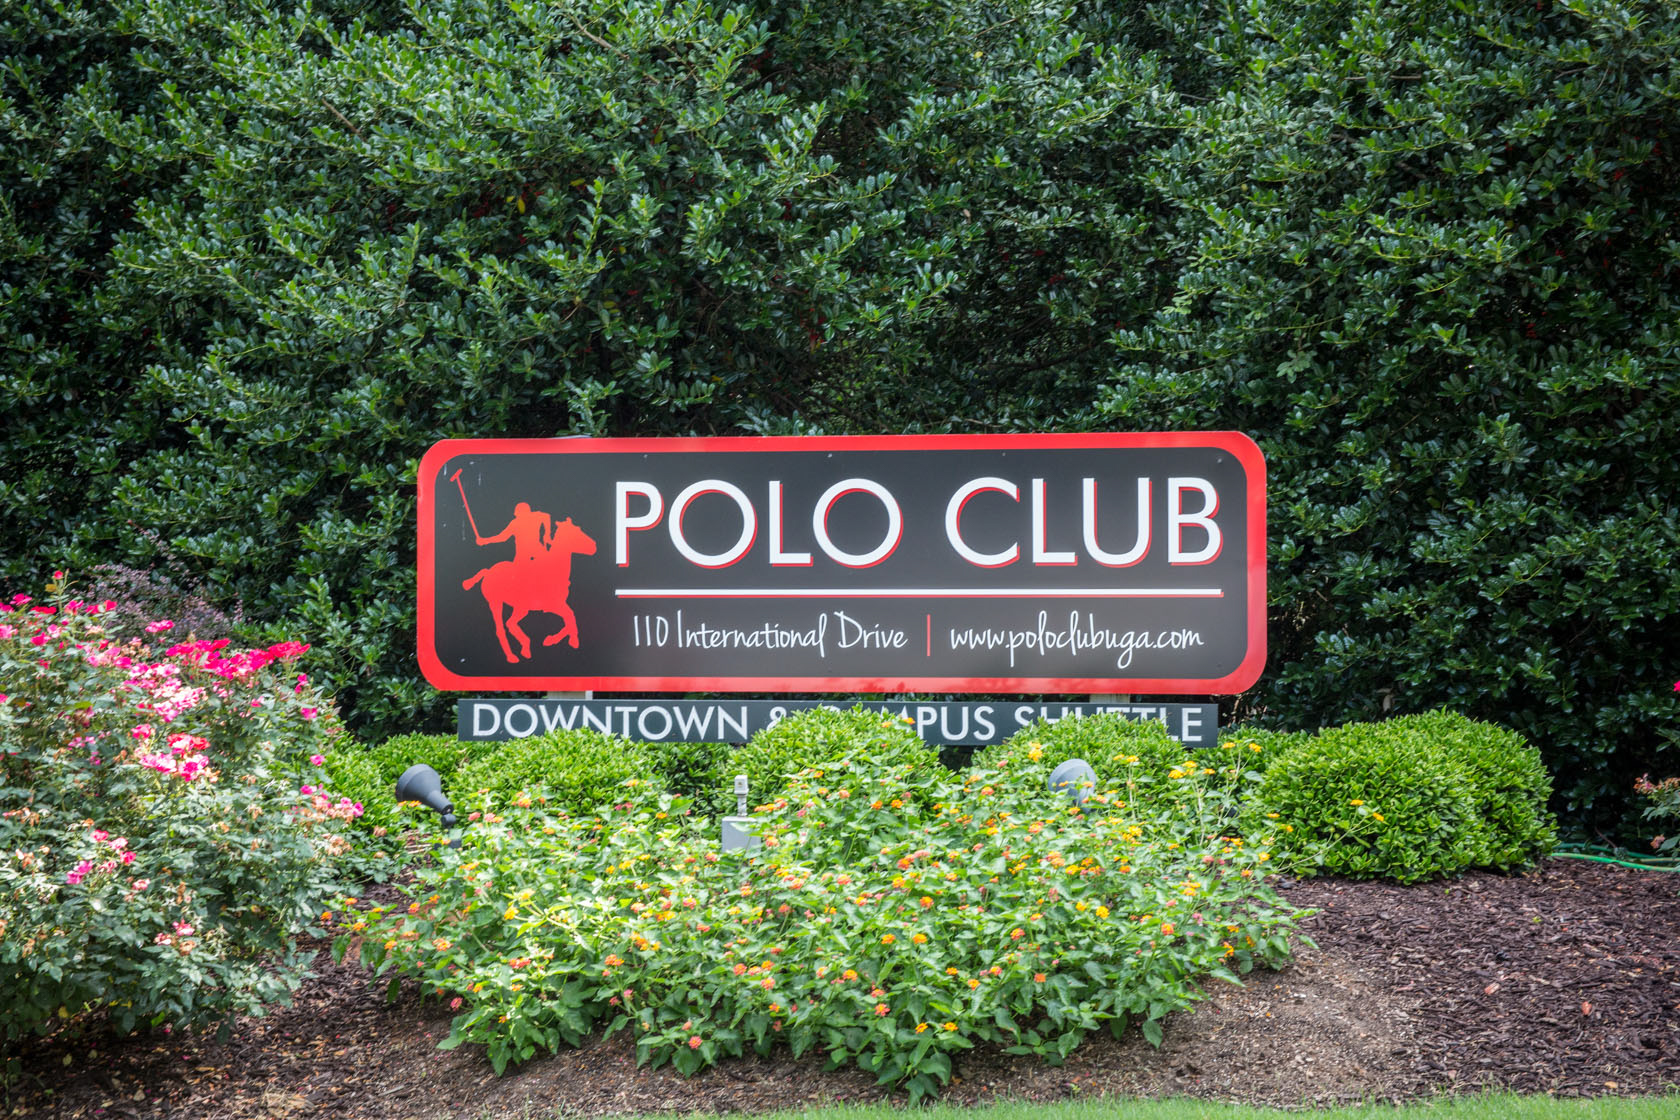 The Polo Club, Athens, Georgia